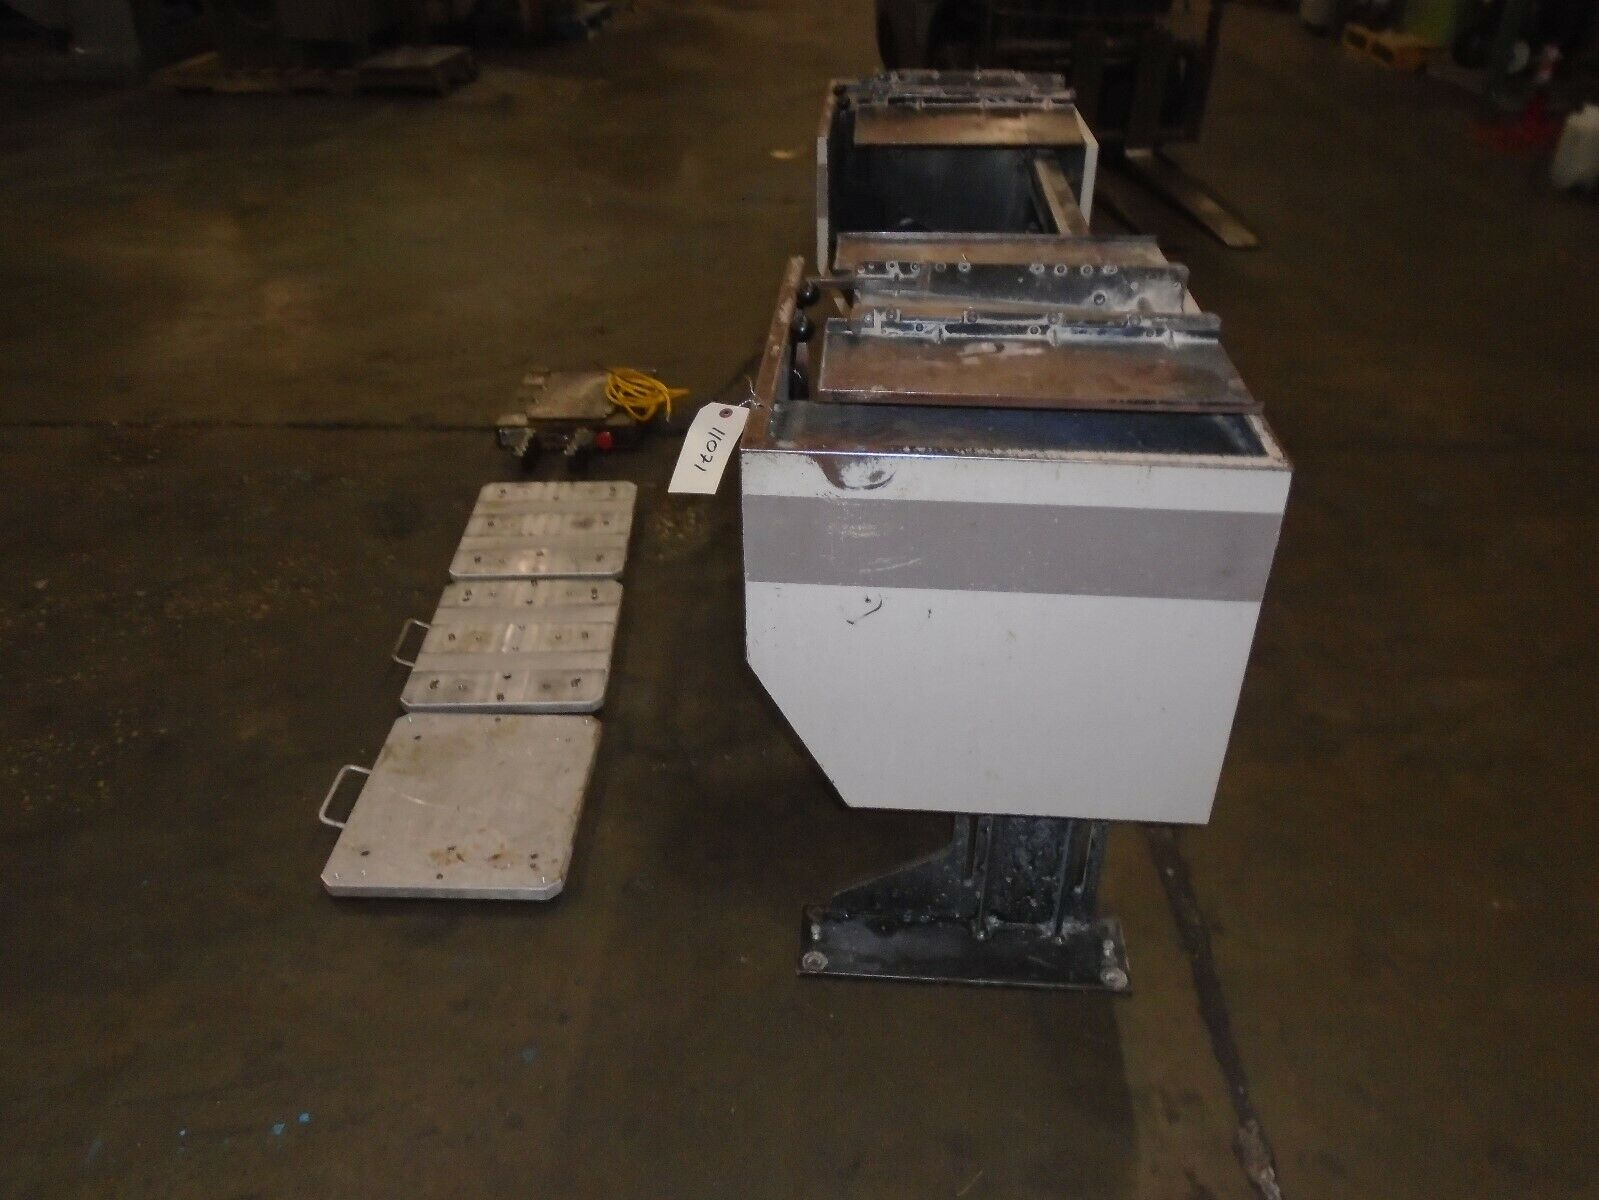 Midaco Series 20 Pallet Changer With 3 Pallets & Receiver - Image 4 of 9